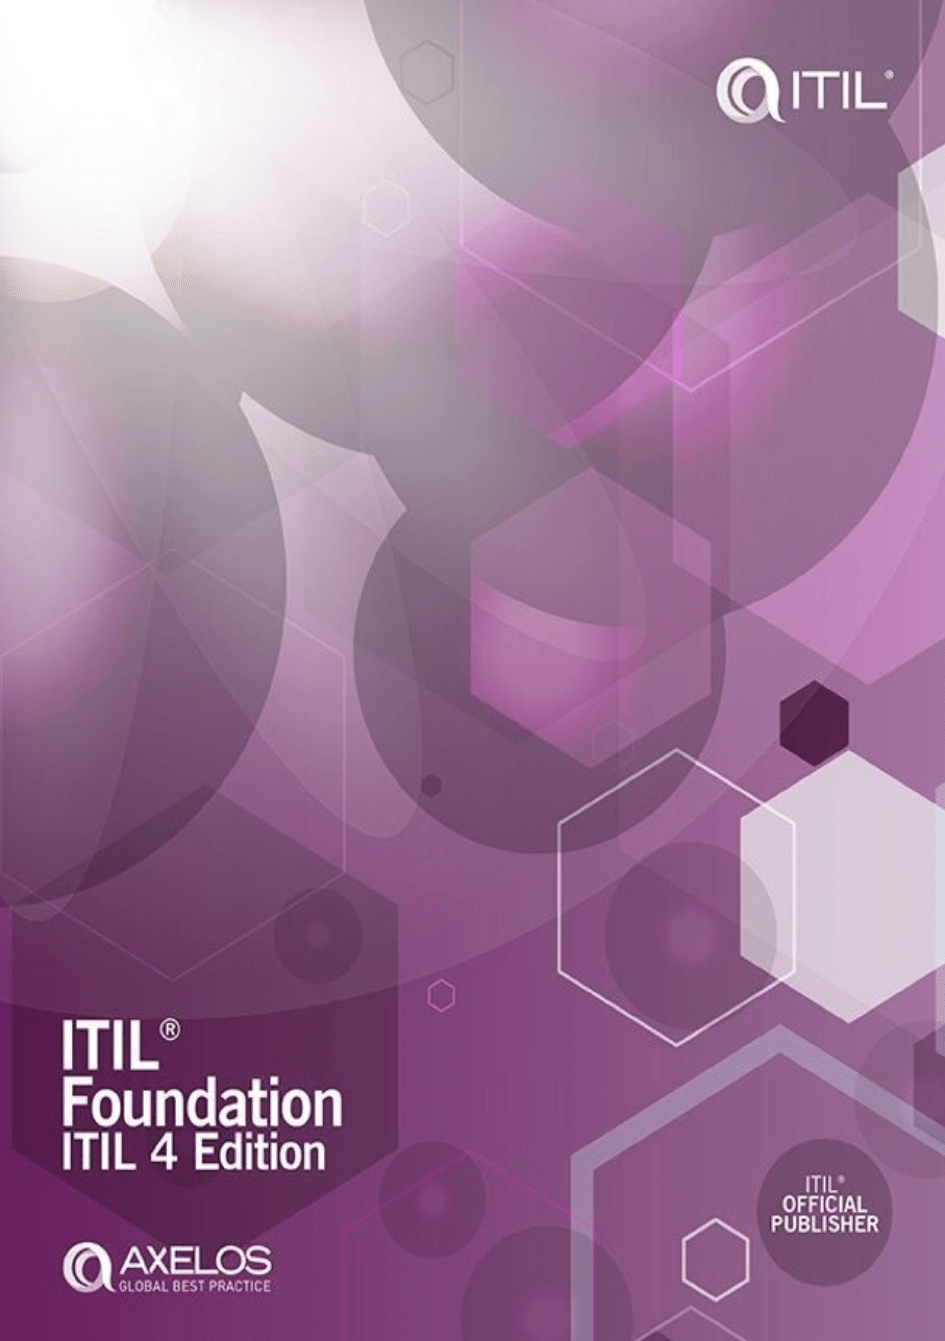 ITIL Foundation: 4th edition at Social-Media.press